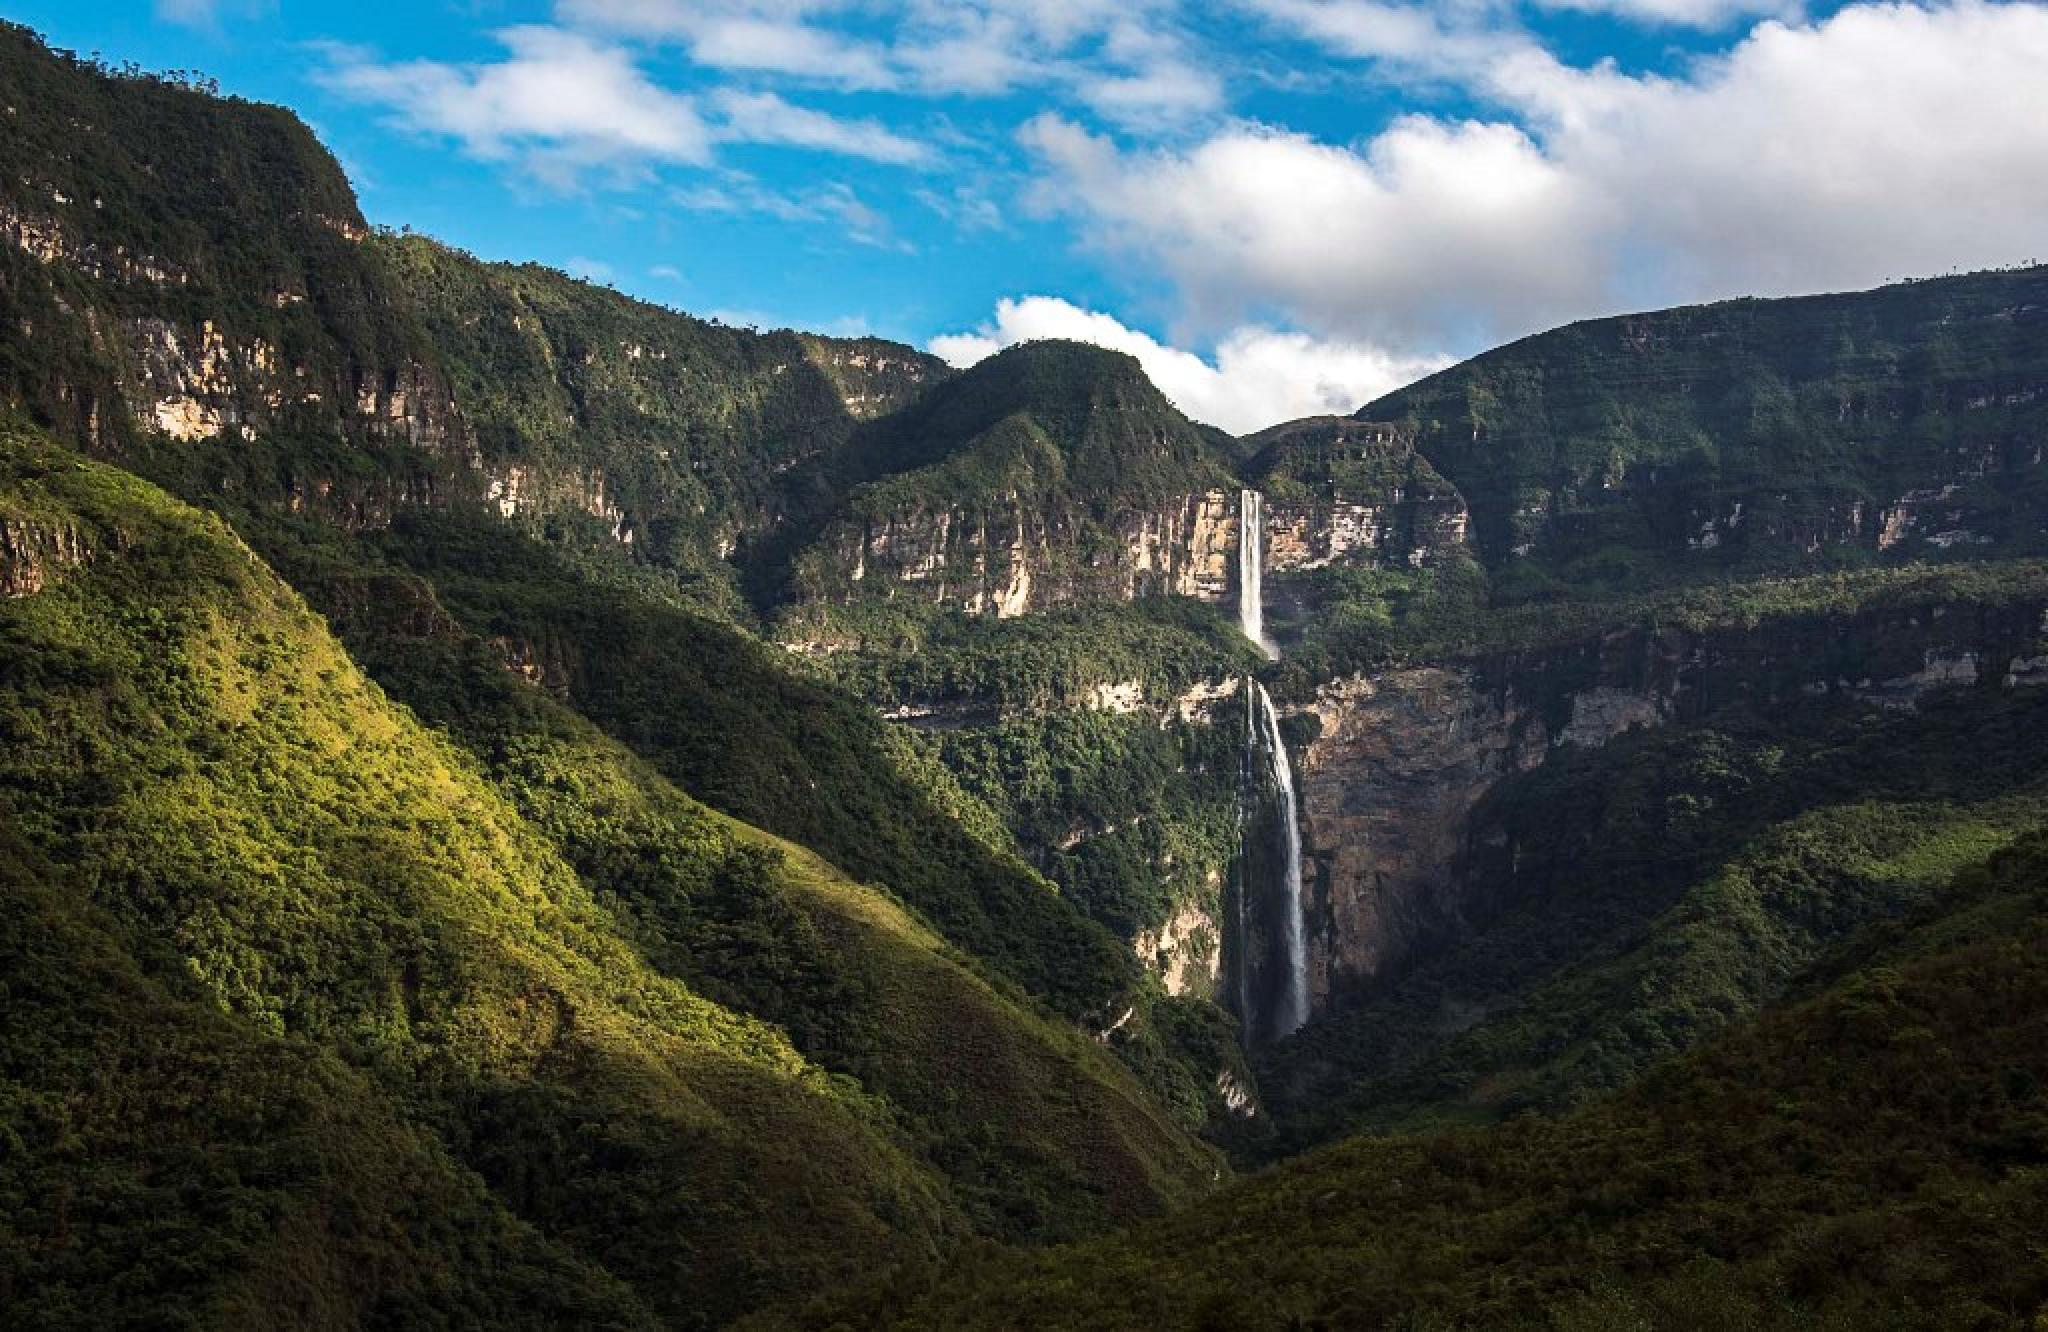 Gocta Lodge Tour Programs: Chachapoyas and the Andes